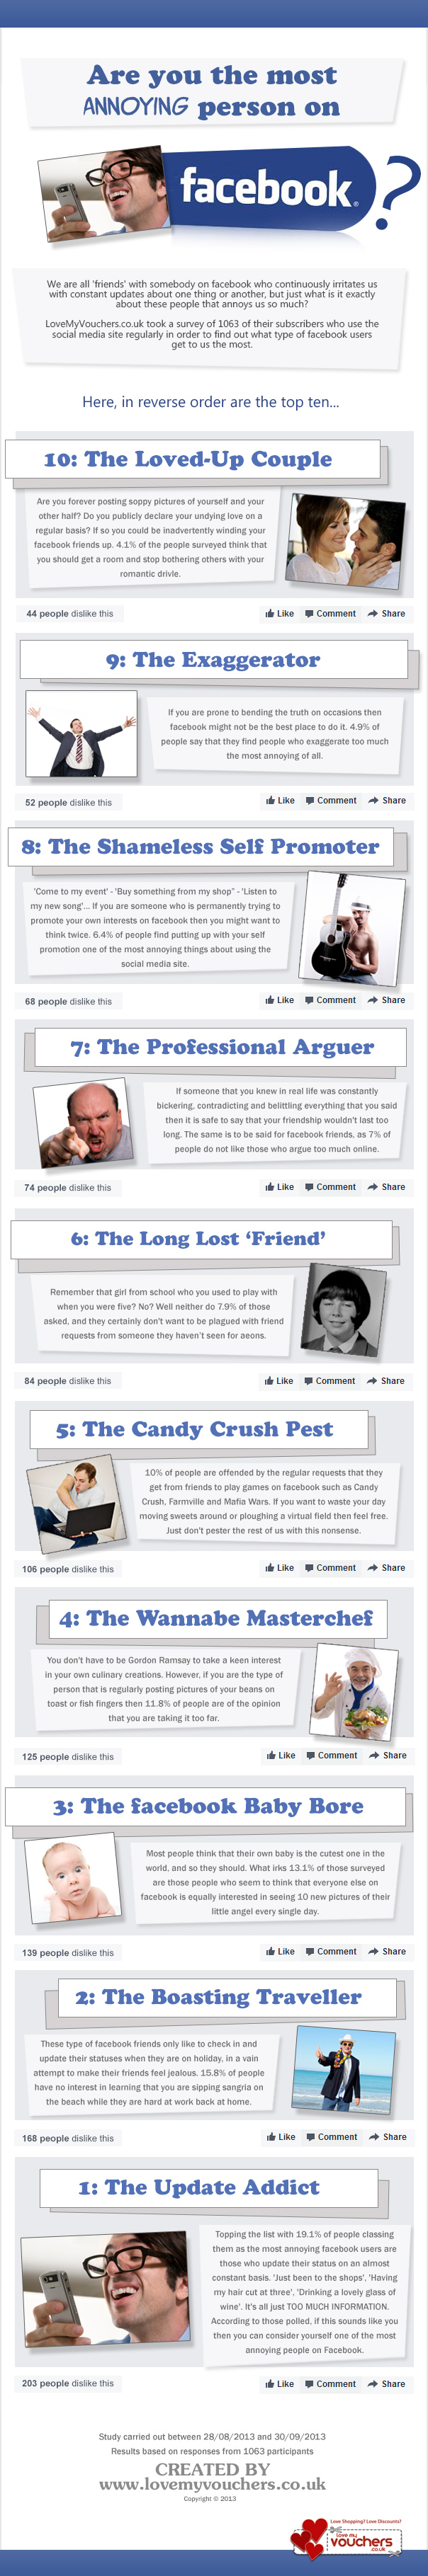 the most annoying people on facebook infographic